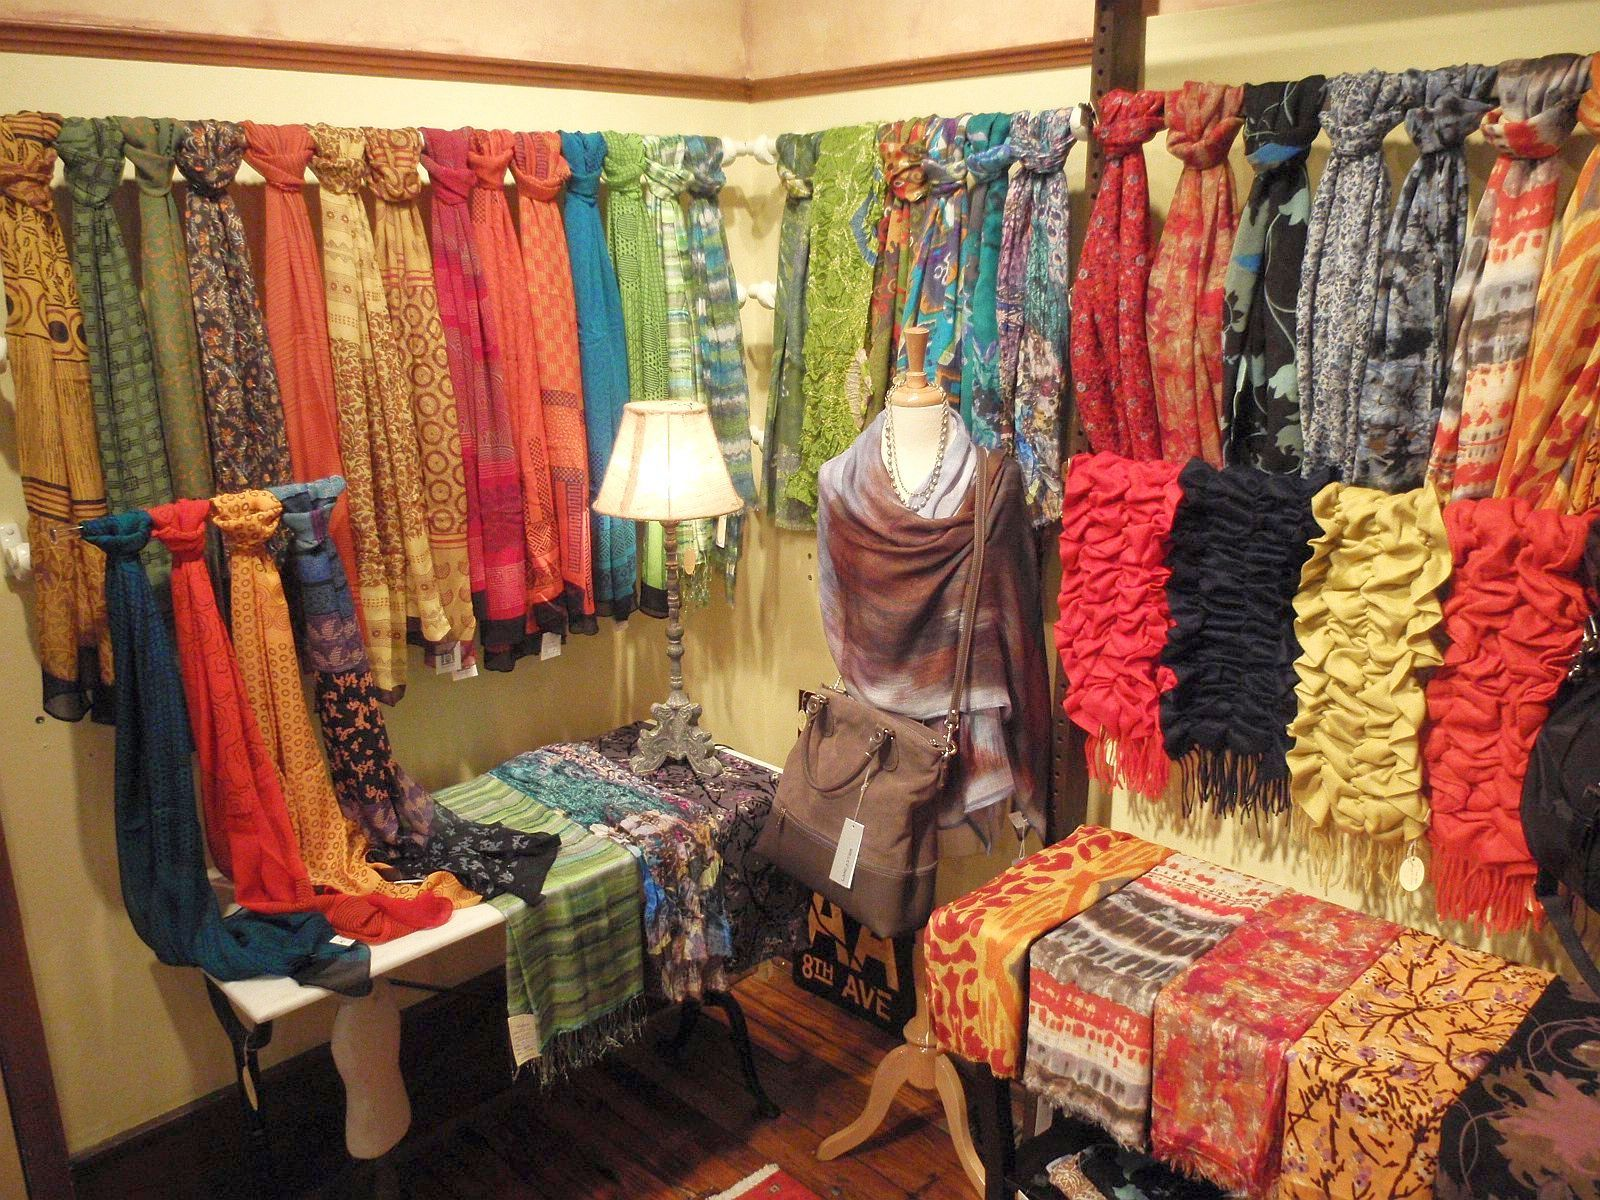 Uncategorized Best Way To Store Scarves scarves an shawl display divine pinterest what if the top was all way straight across then bottom ones were shorter and staggered joyful of fall winter s